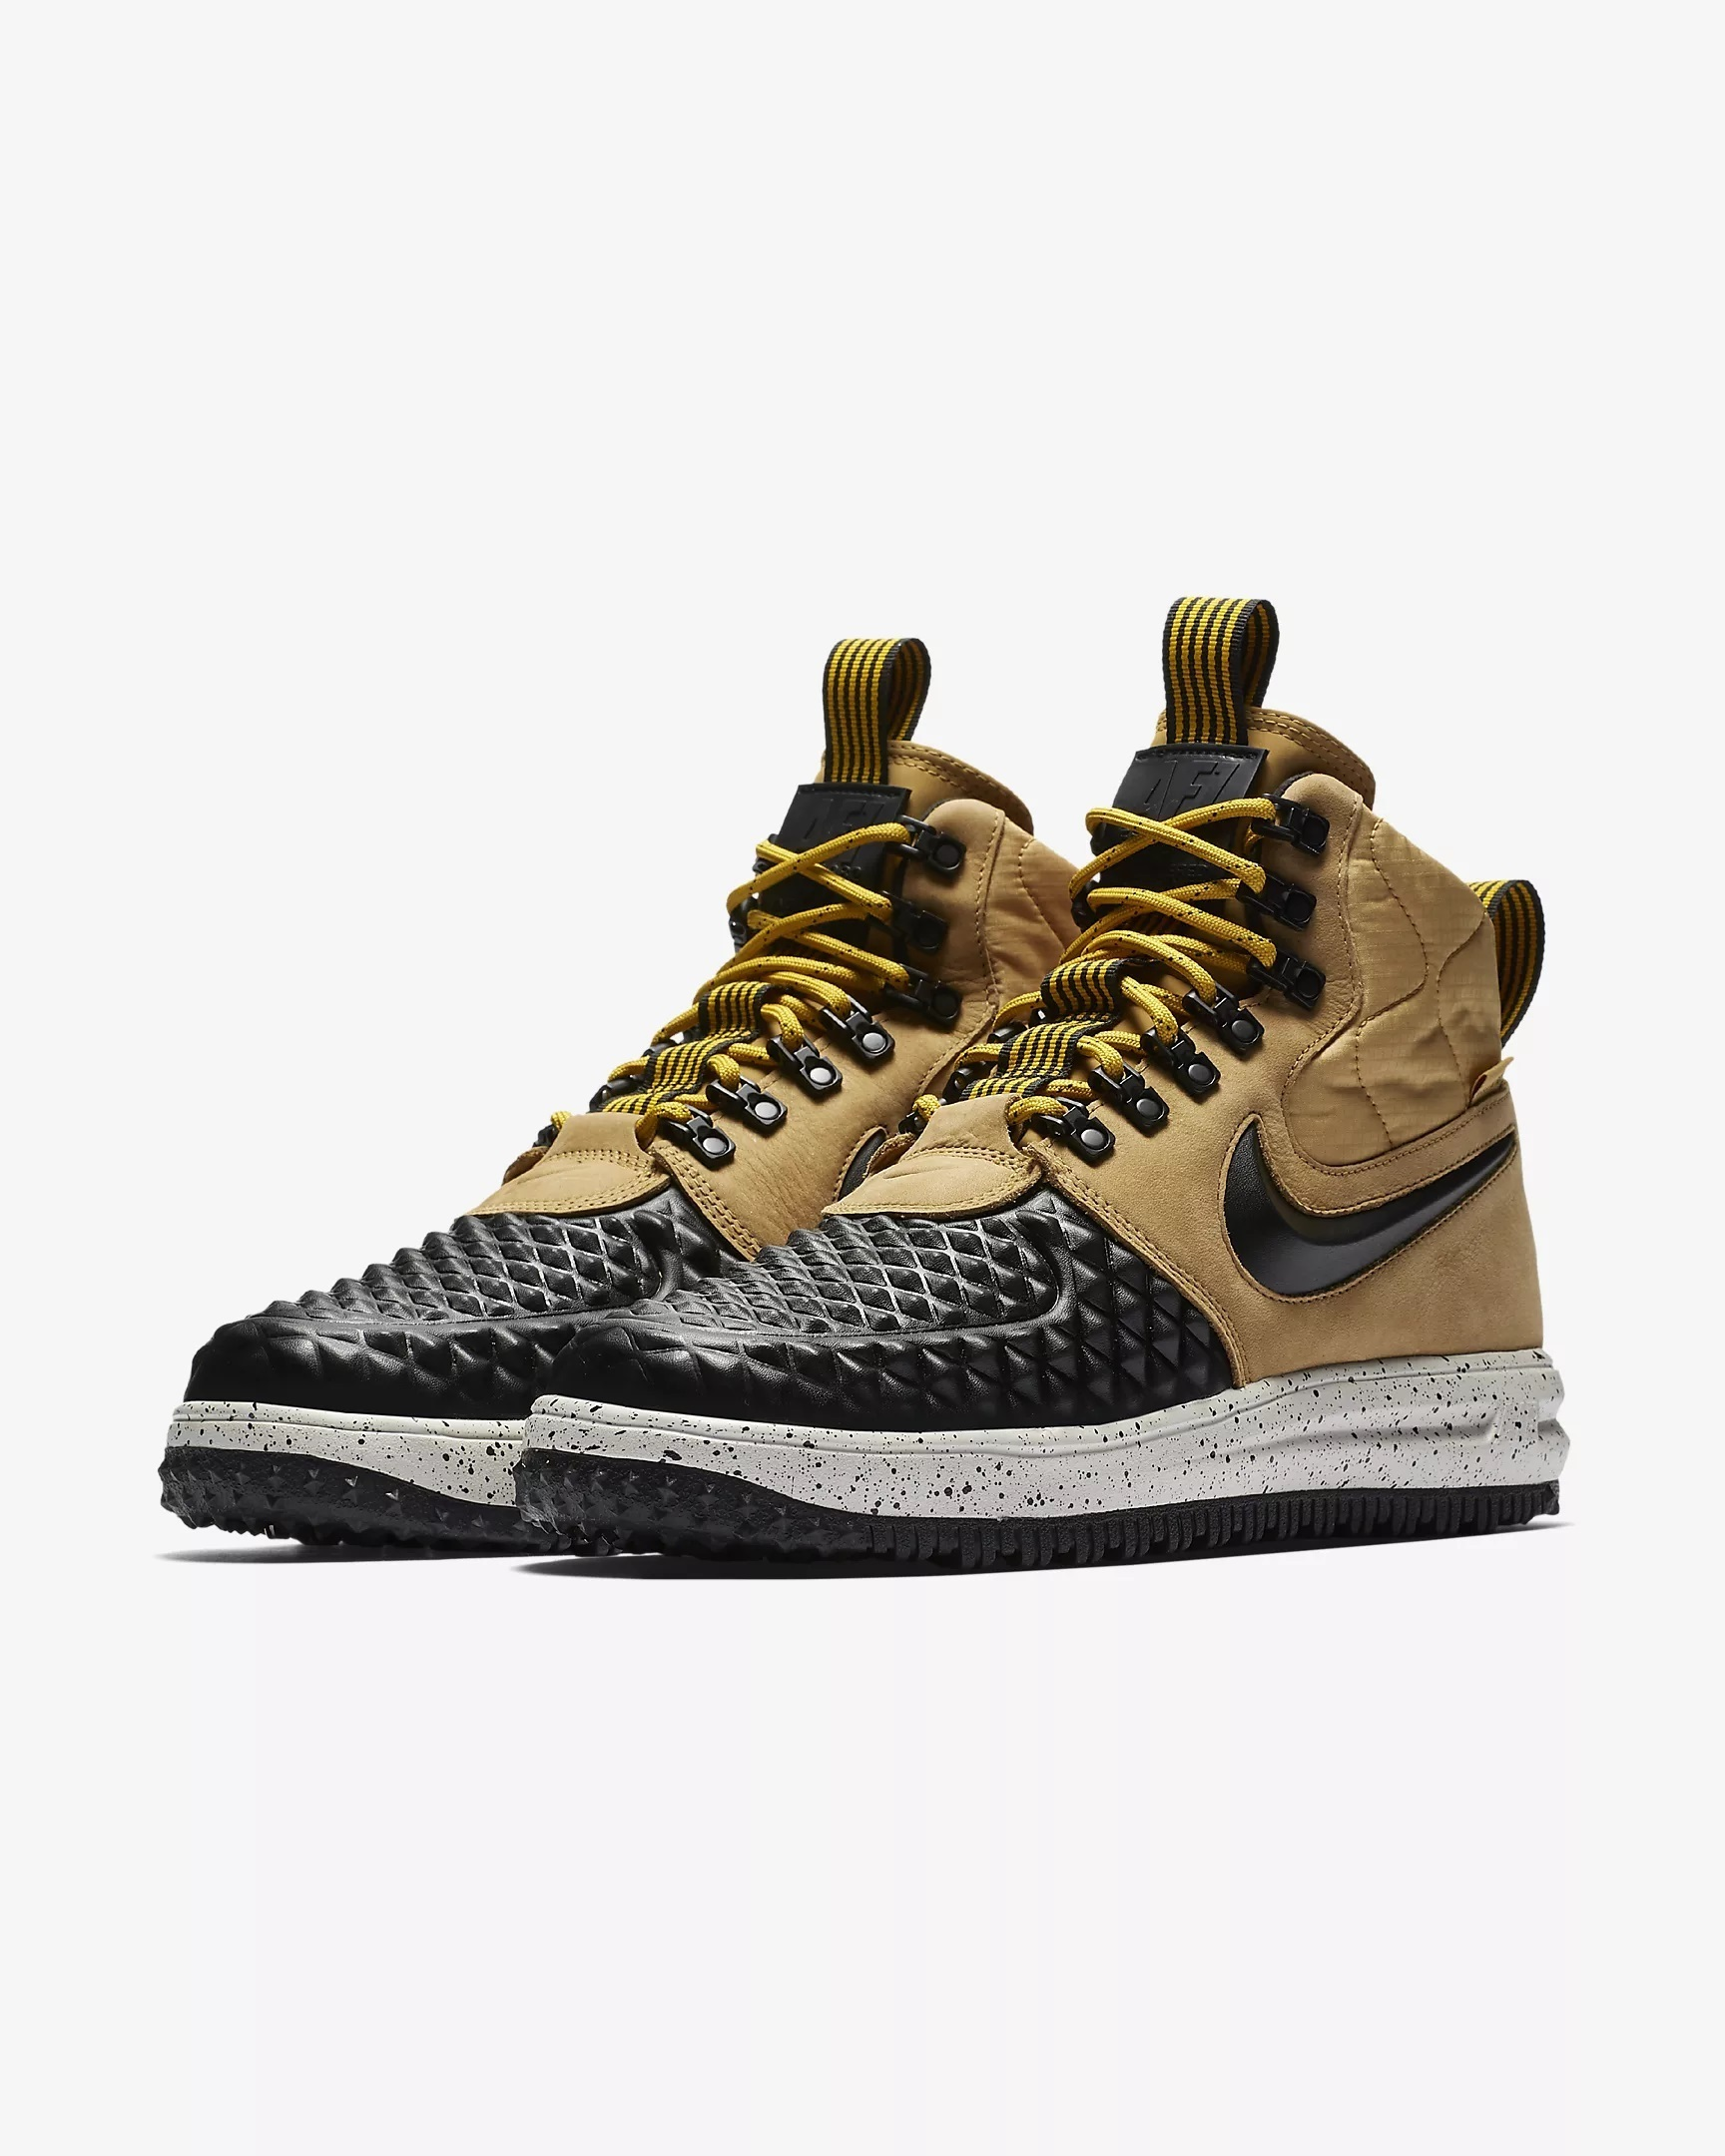 【送料込み】メンズ NIKE LUNAR FORCE 1 DUCKBOOT '17